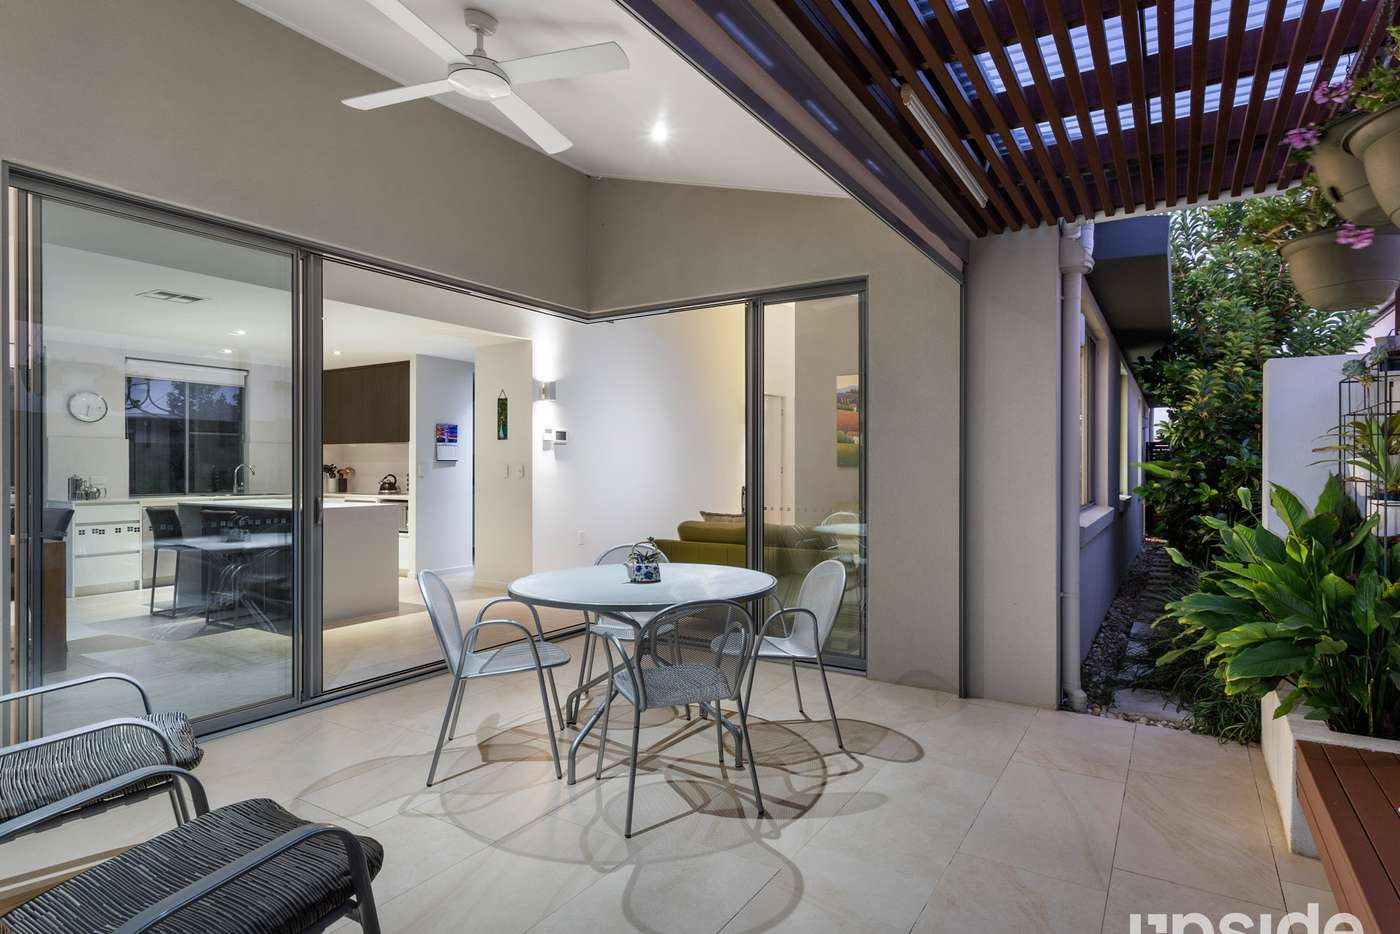 Sixth view of Homely house listing, 24 Mcdermott Parade, Rochedale QLD 4123